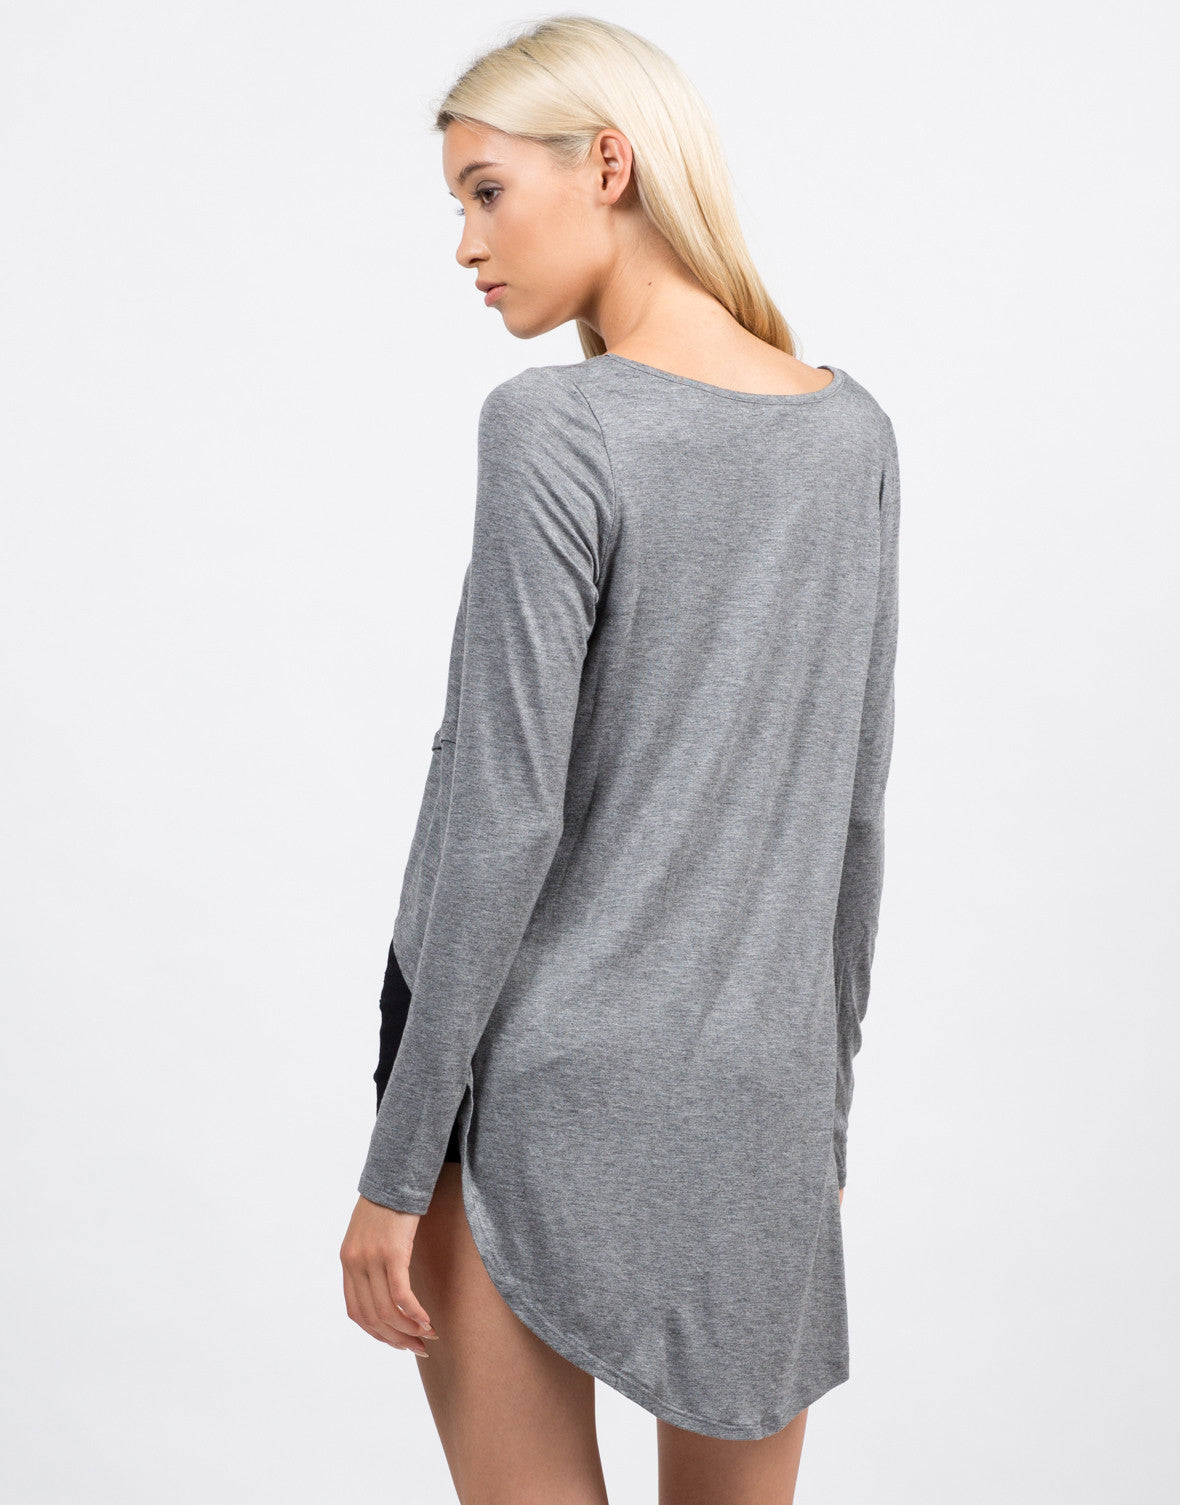 Back View of Dramatic Long Sleeve Top